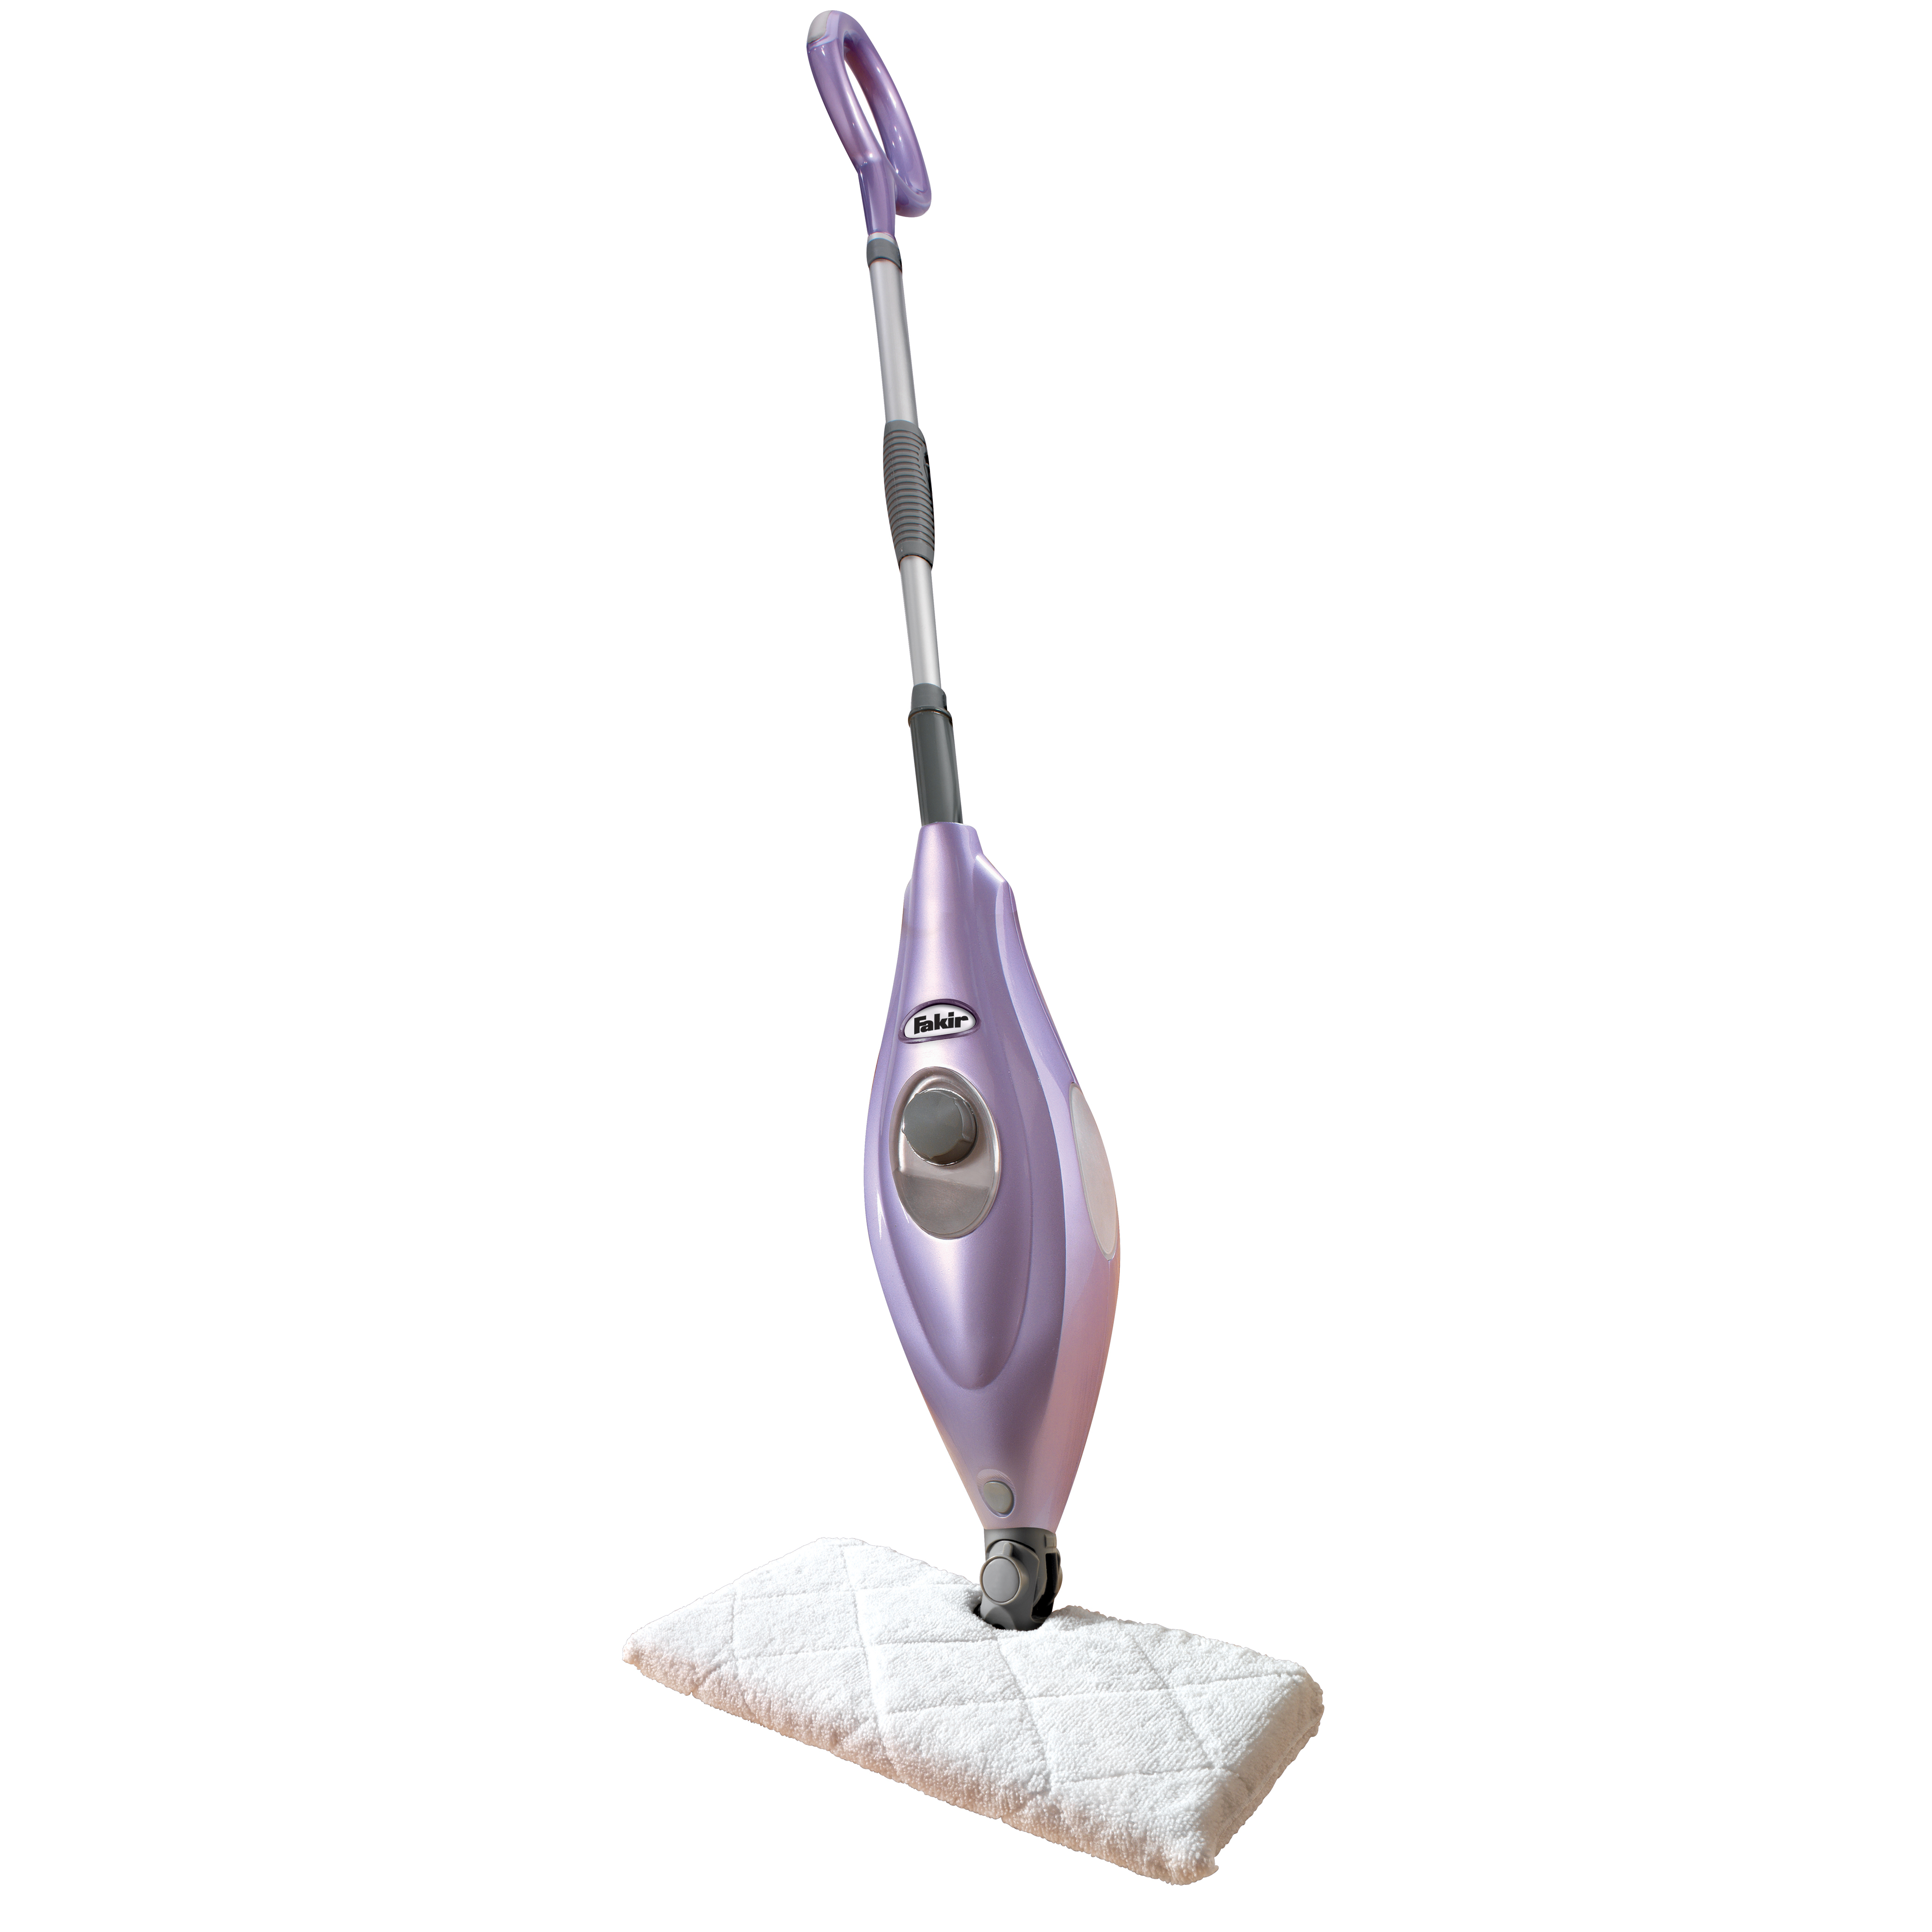 Steam mop briscoes iphone battery charging